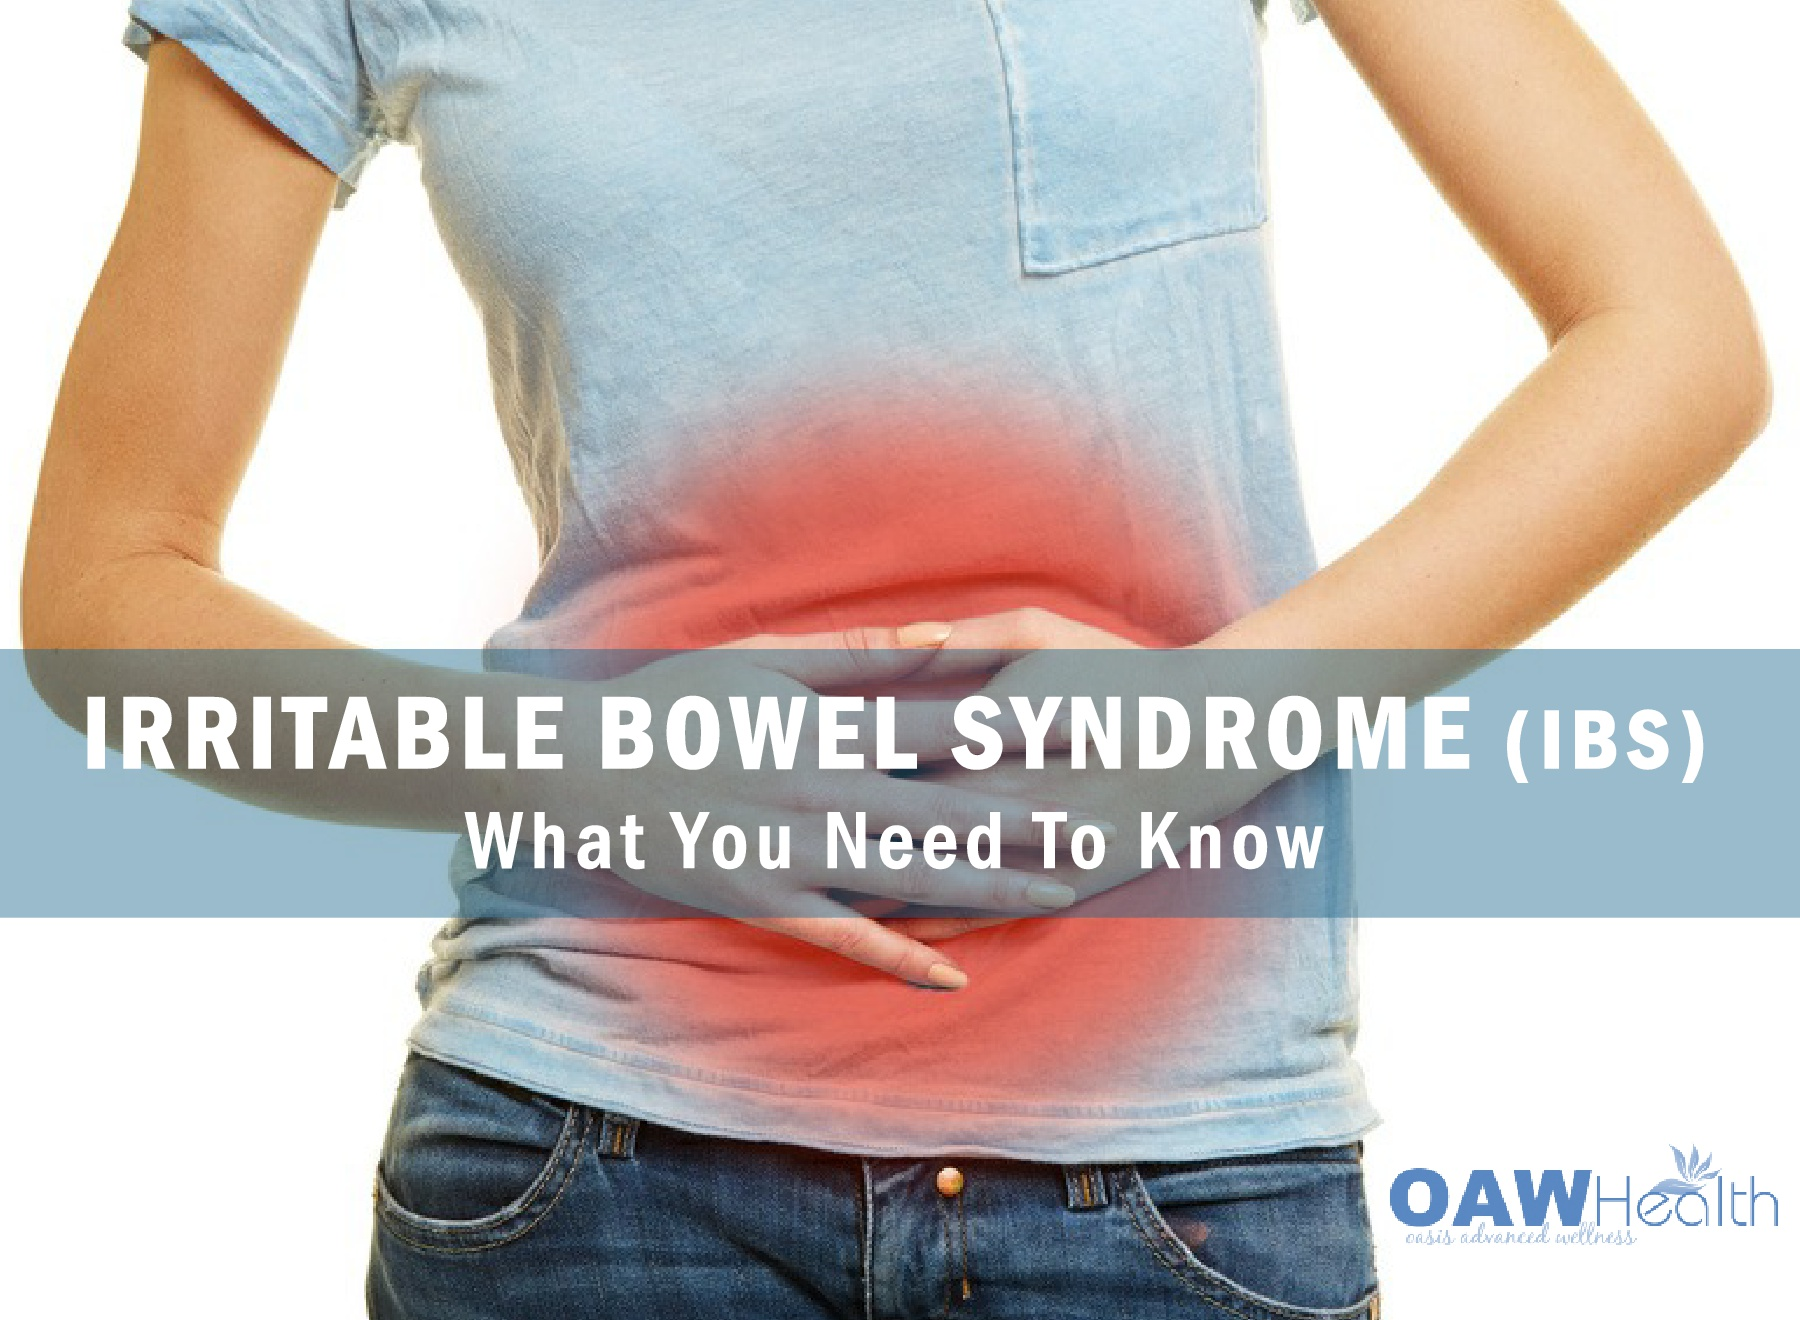 Irritable Bowel Syndrome (IBS) – What You Need To Know